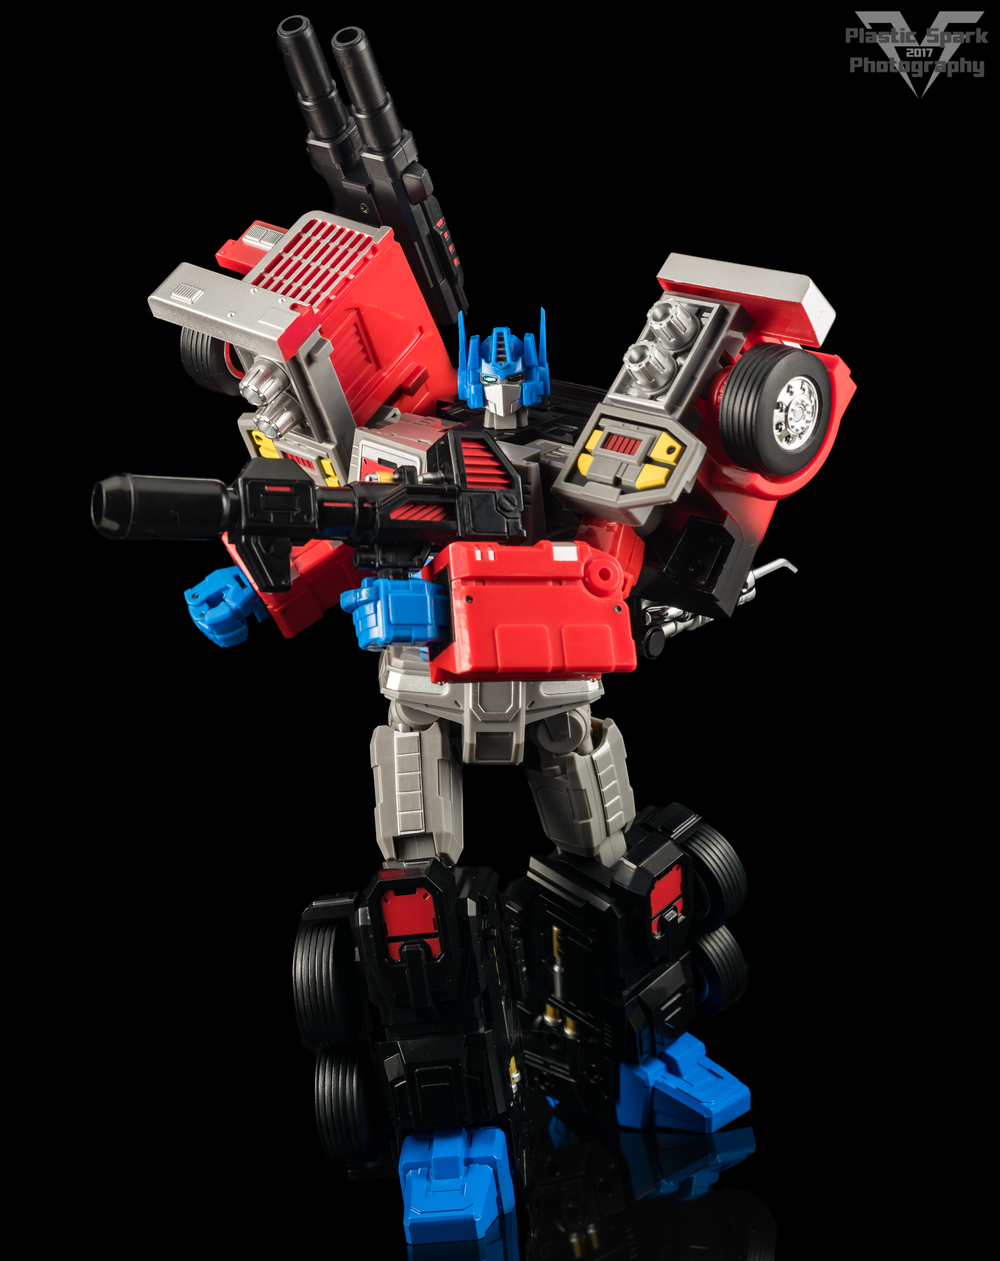 Fans-Hobby-MB-04-Gunfighter-II-(38-of-61).png